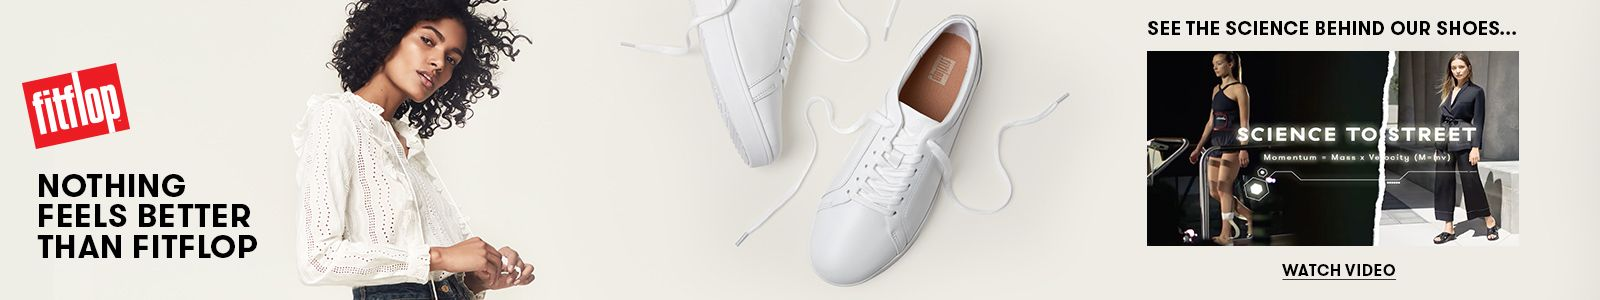 Fitflop, Nothing Feels Better Than Fitflop, See the Science Behind Our Shoes, Watch Video